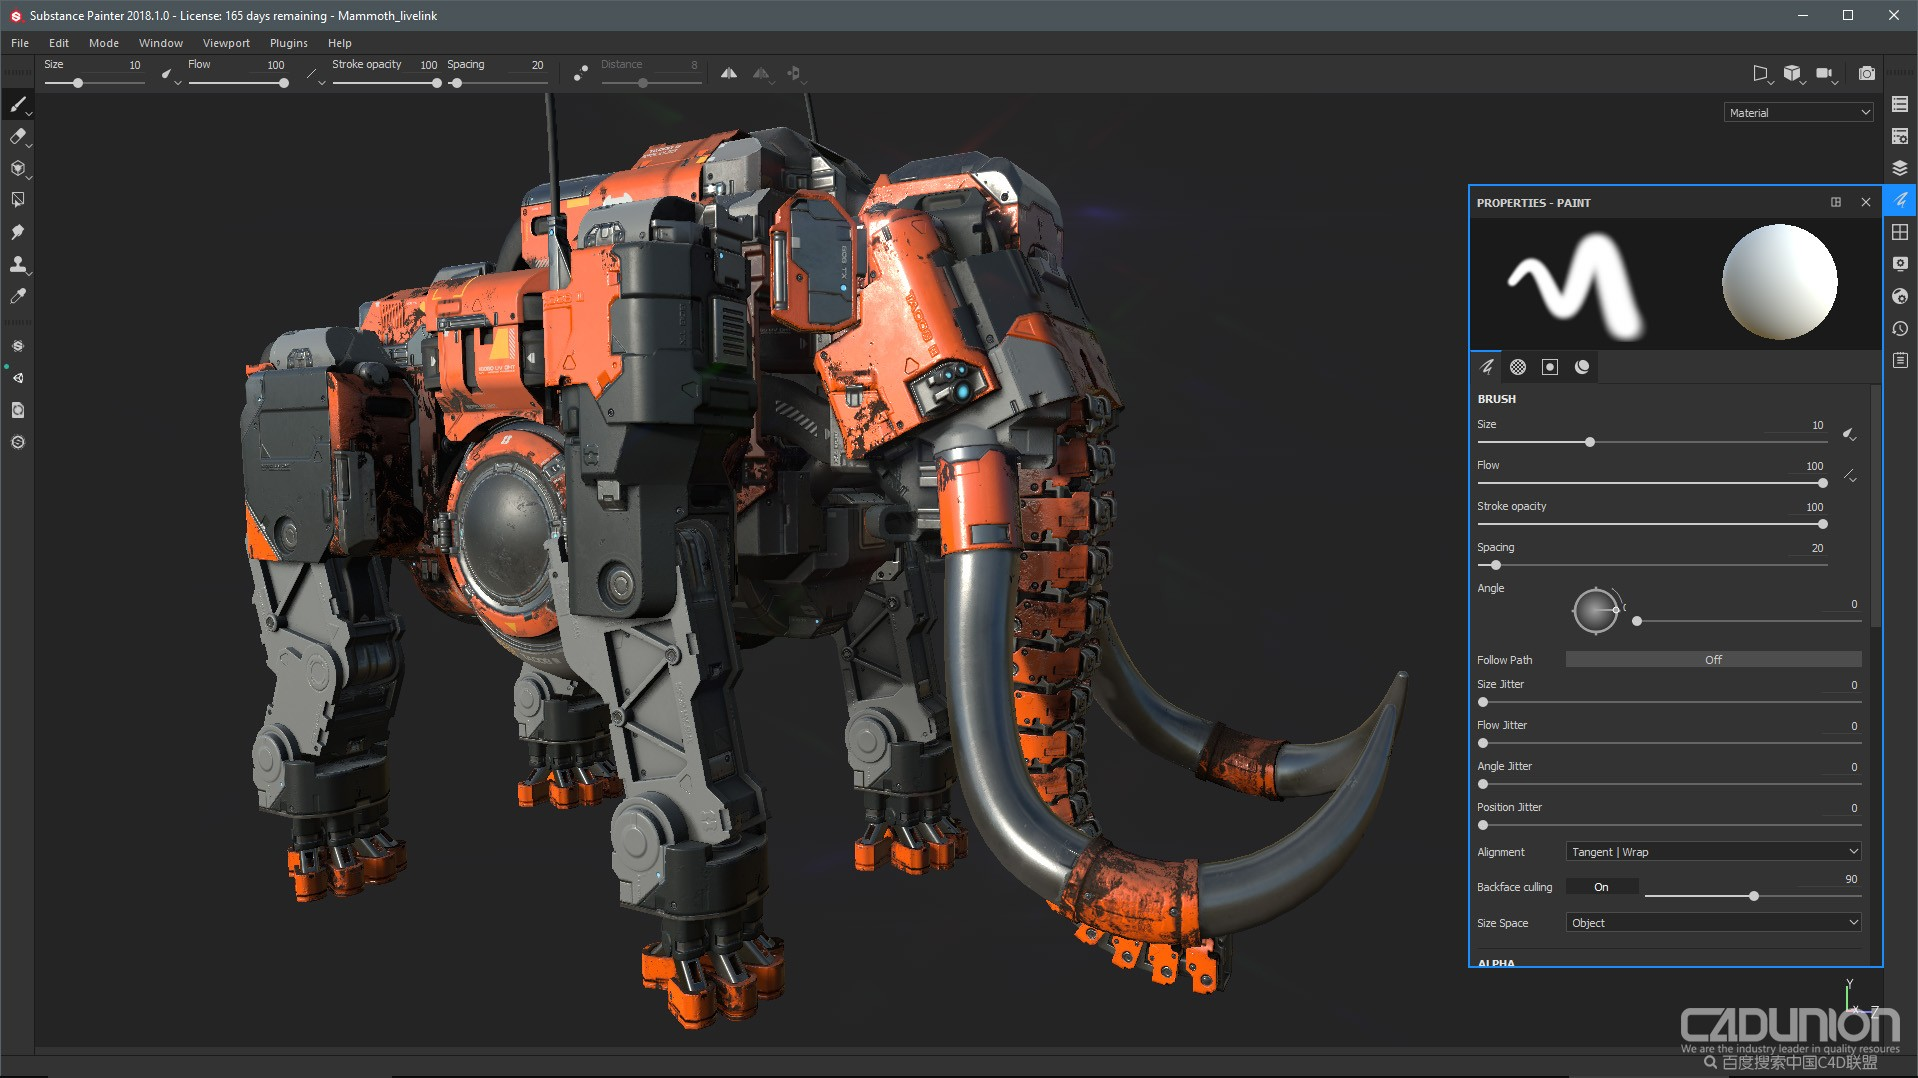 Substance_Painter_Mammoth.jpg